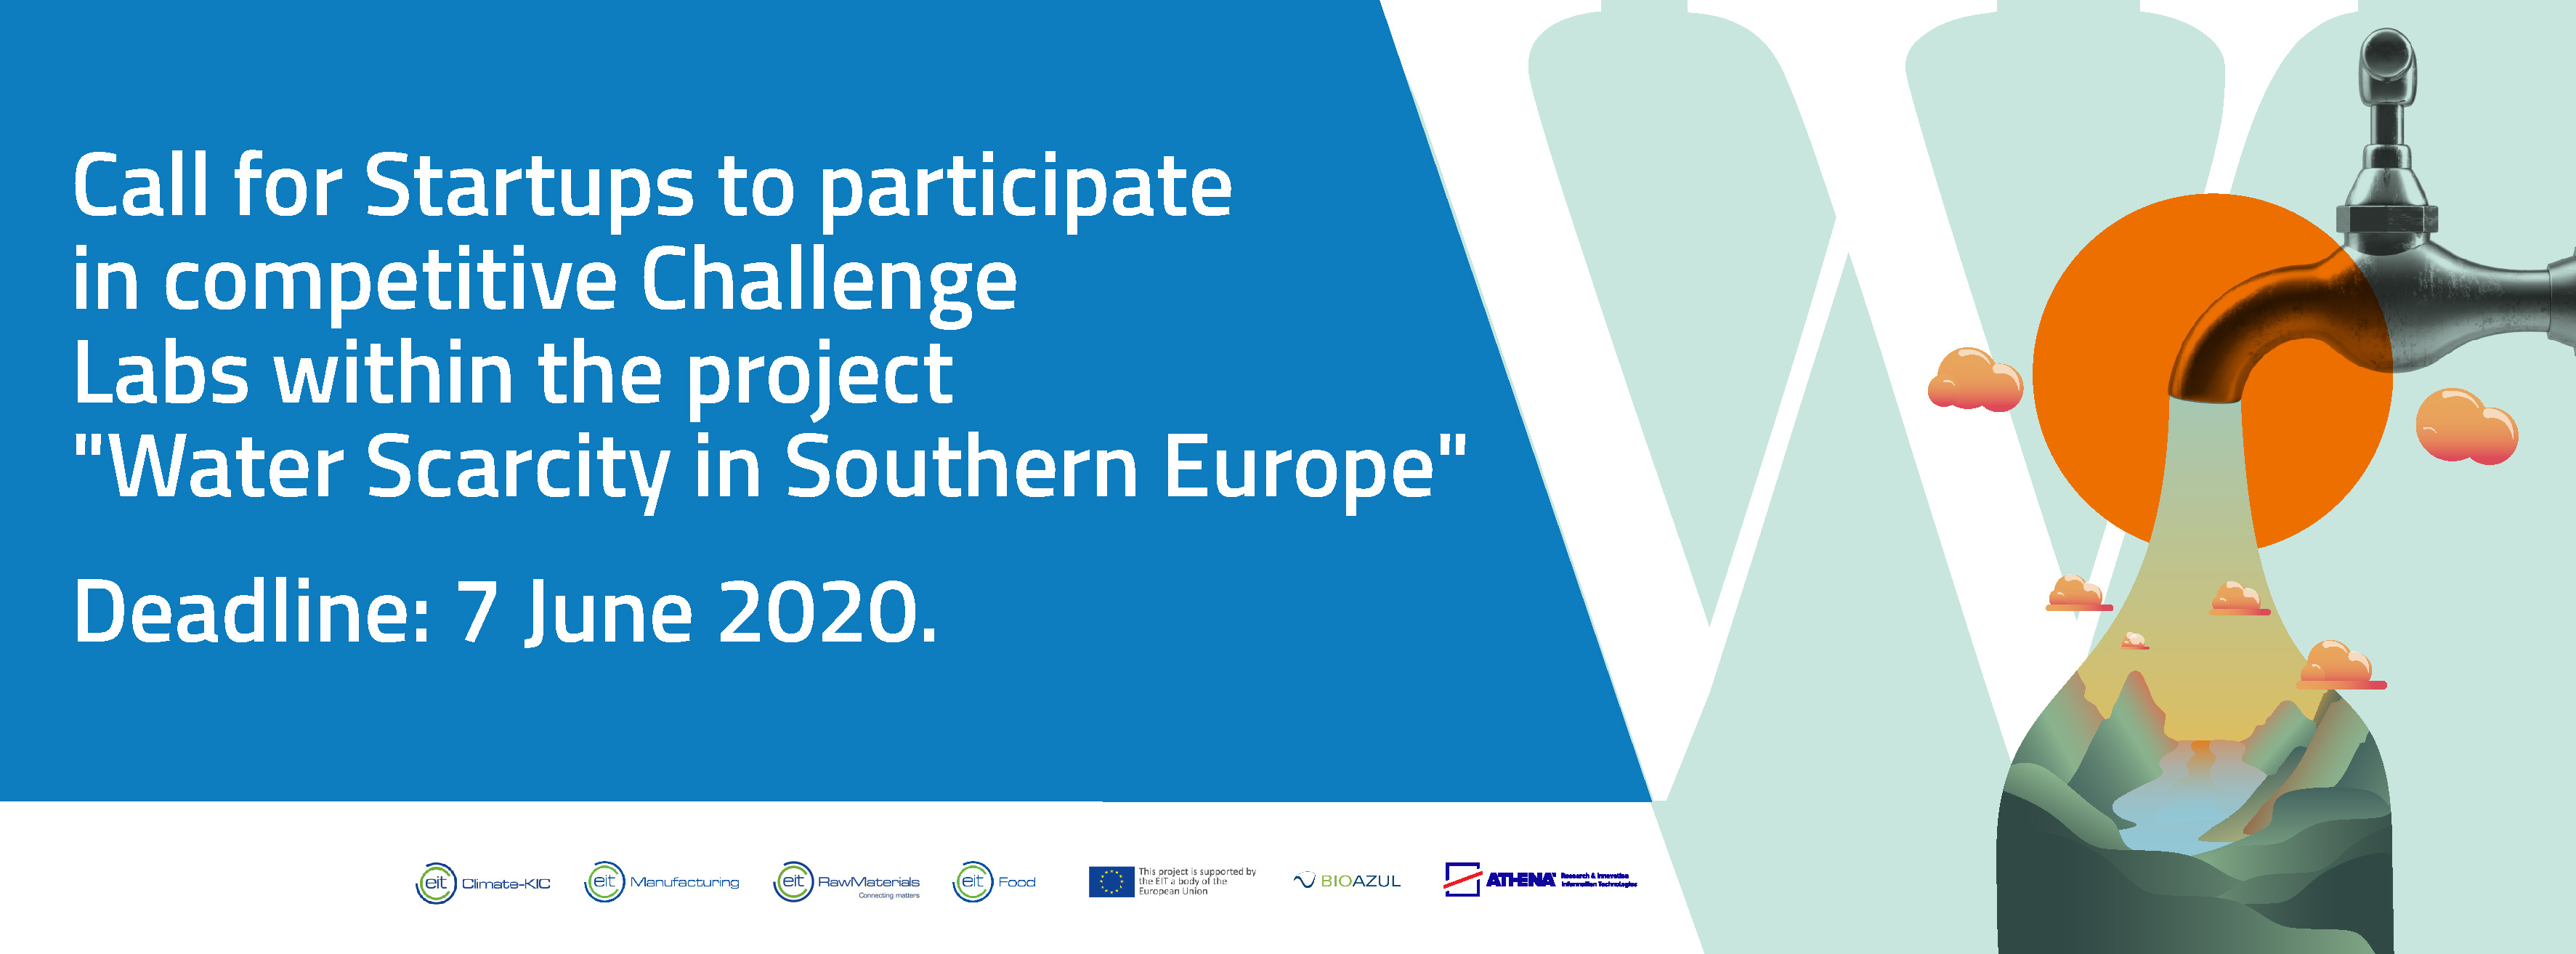 Applications open for startups that fight to cope with Water Scarcity in Southern Europe!